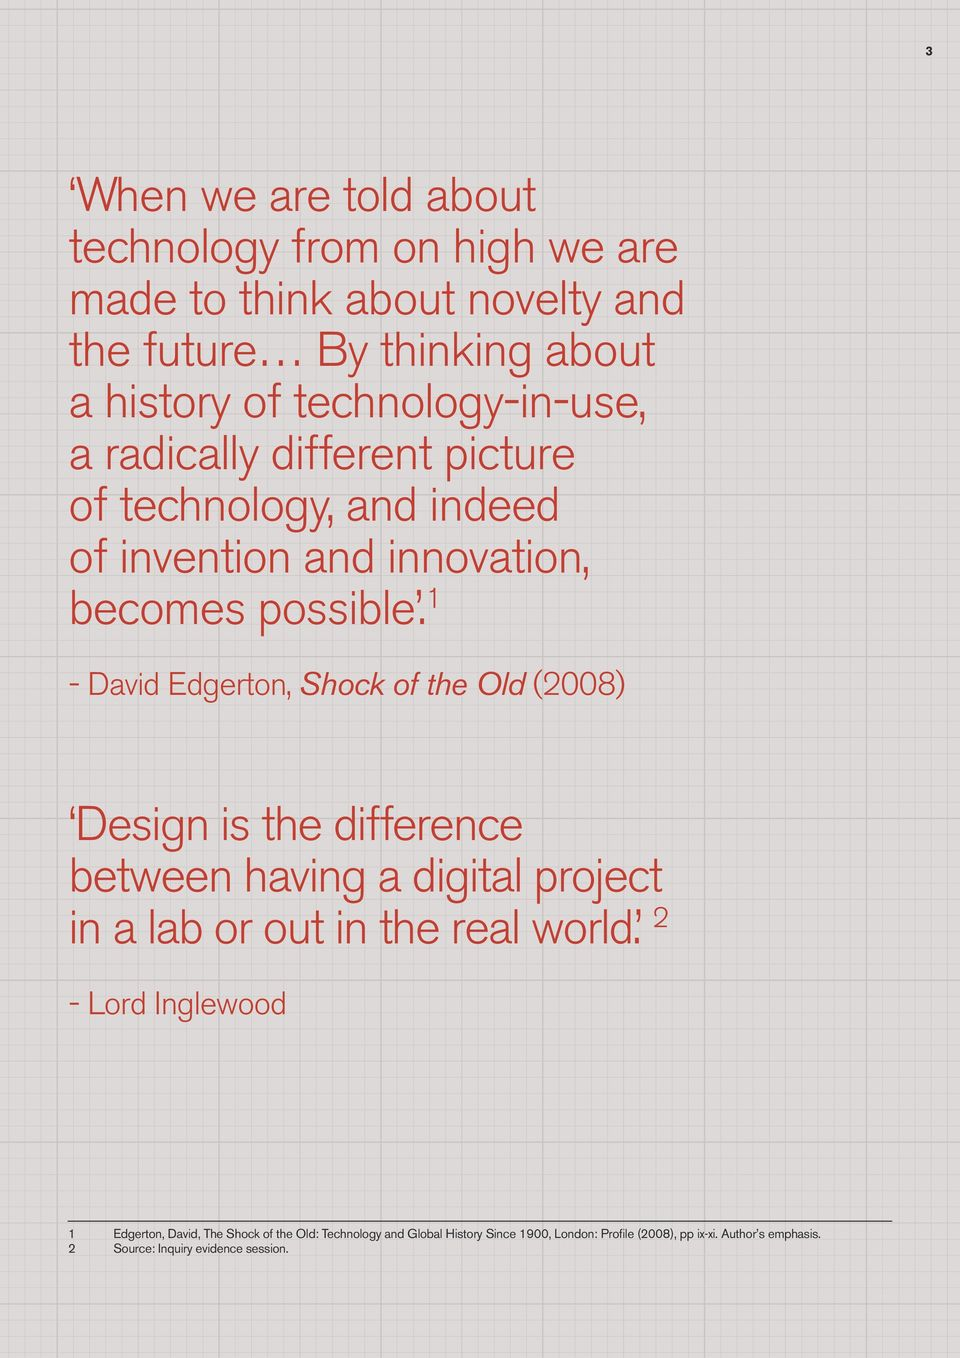 1 - David Edgerton, Shock of the Old (2008) Design is the difference between having a digital project in a lab or out in the real world.